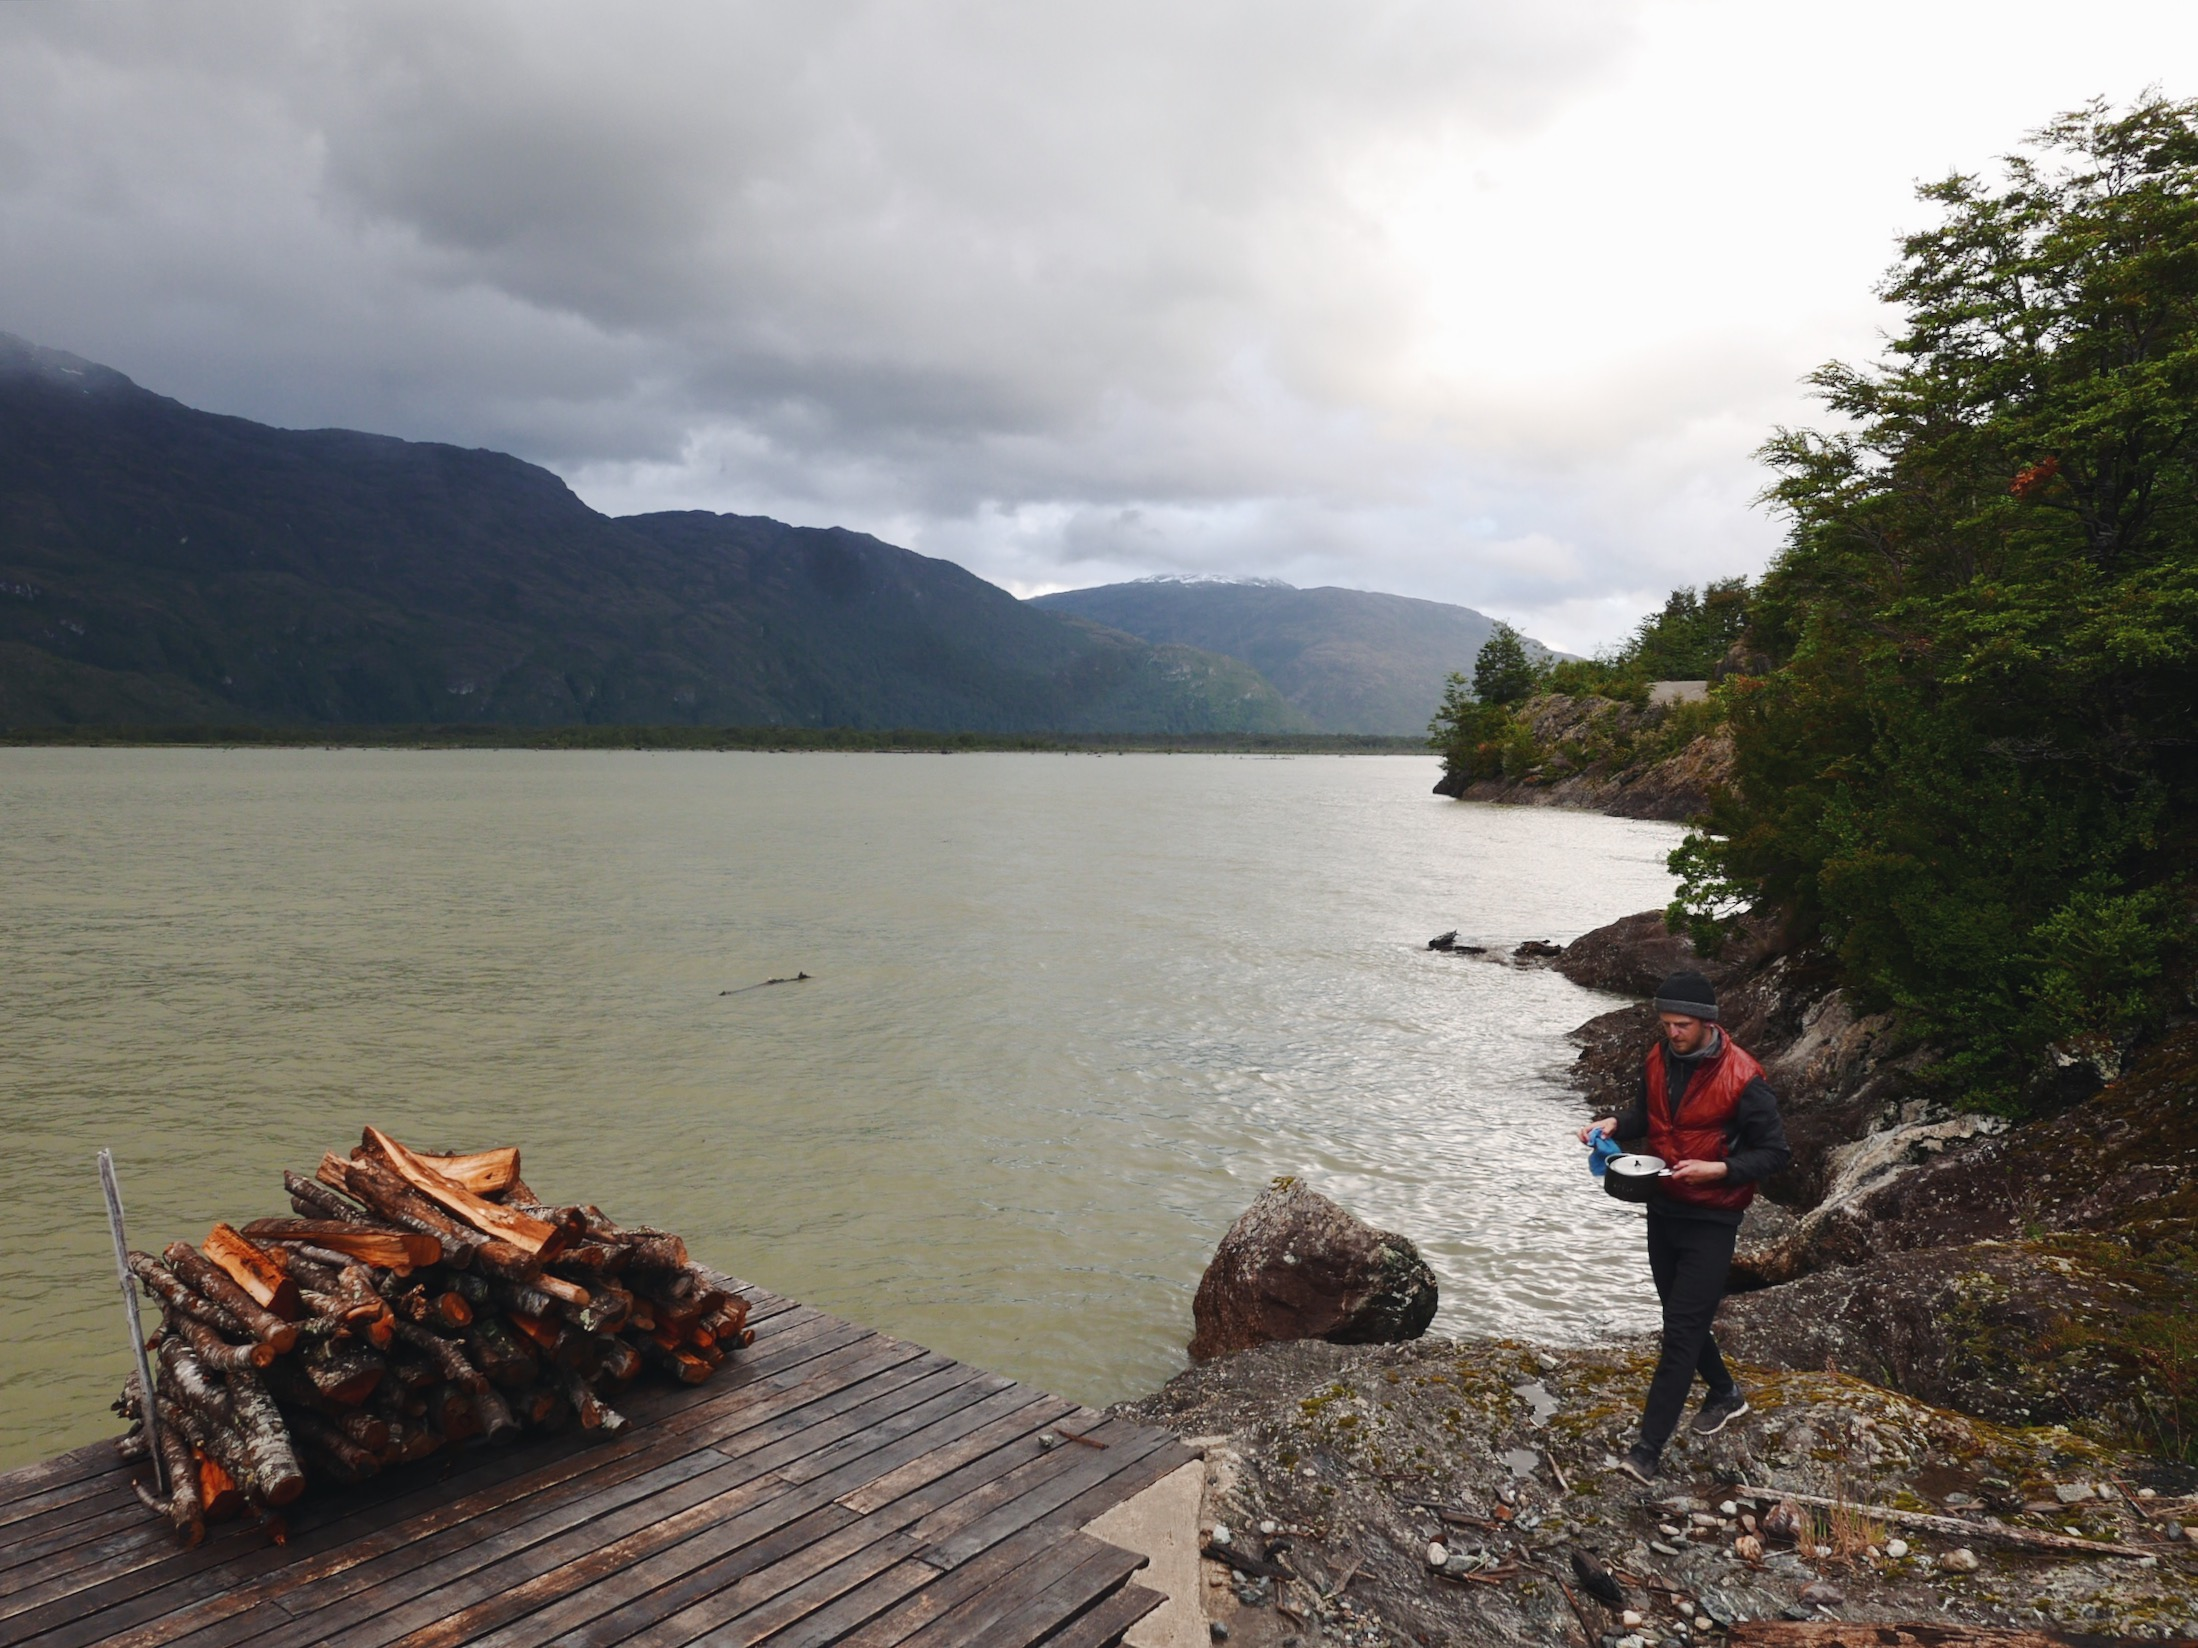 Part of Chile's shattered island coast line, this deep inlet reaches far enough in to cut through the Carretera Austral—requiring the road's last mandatory ferry passage.